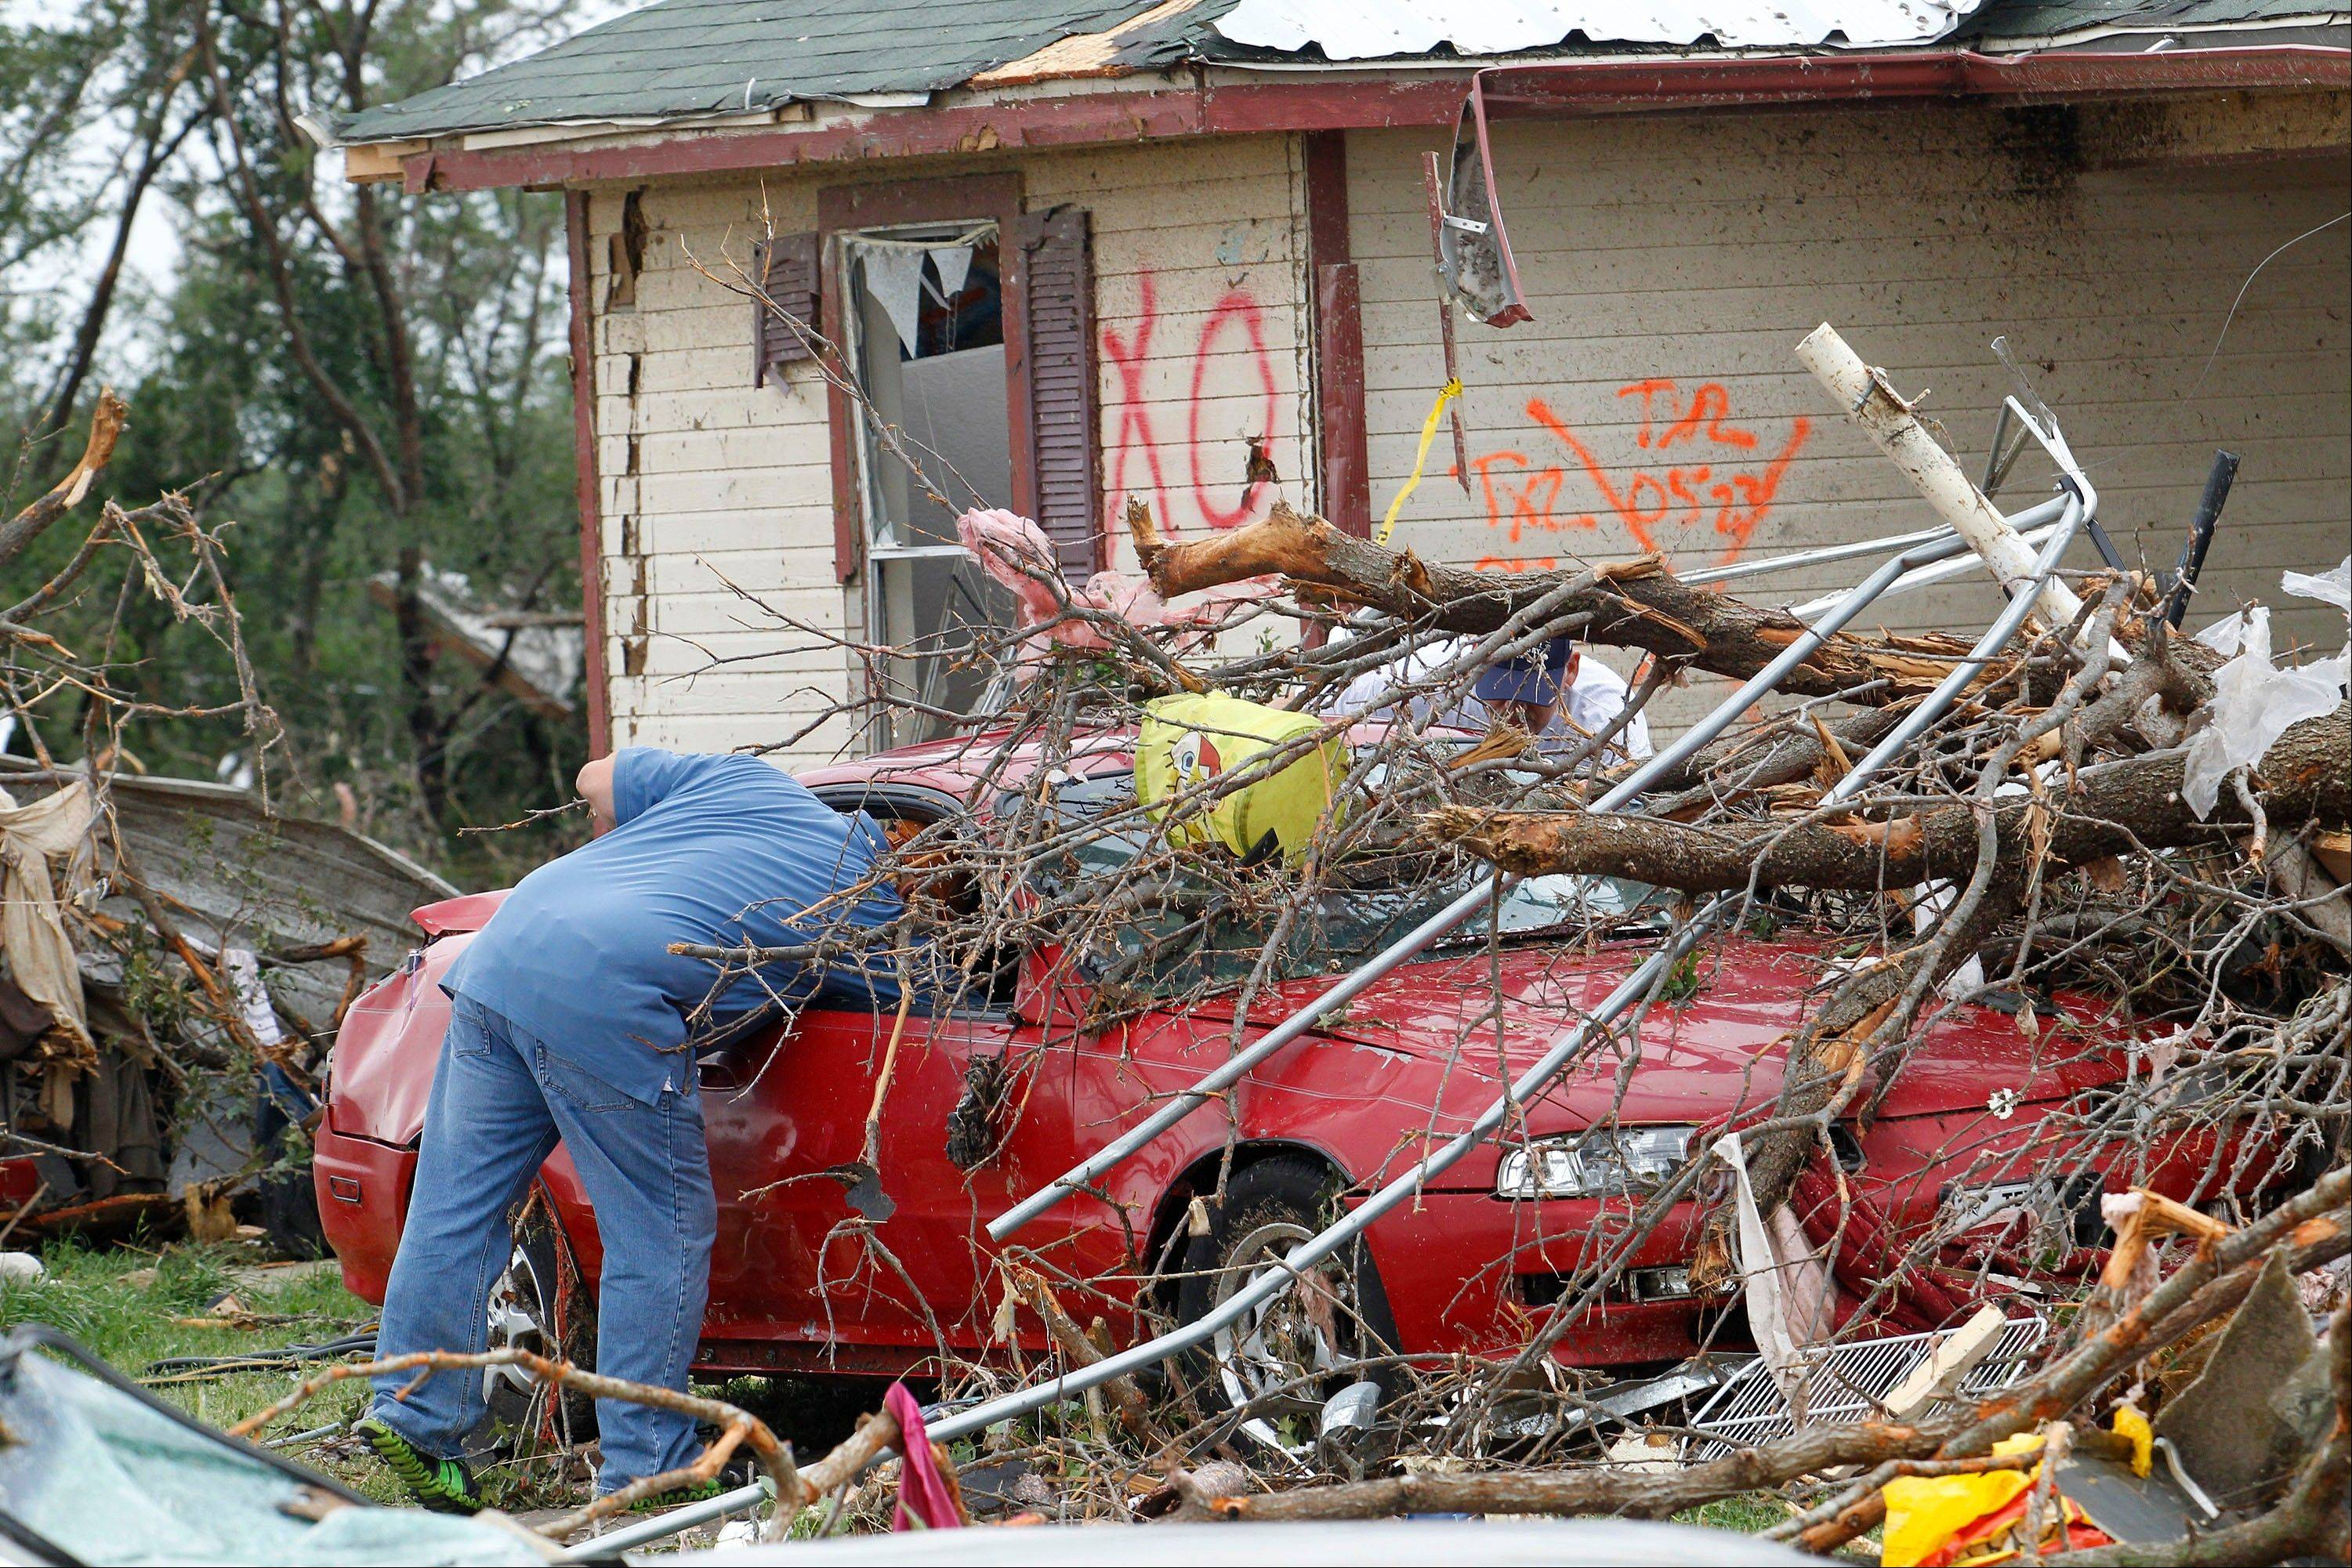 Crushed autos sit amid the rubble as emergency personnel continue search efforts to locate unaccounted for people in the Rancho Brazos neighborhood in Granbury, Texas, Thursday, May 16, 2013. A rash of tornadoes slammed into several small communities in North Texas overnight, leaving at least six people dead, dozens more injured and hundreds homeless.